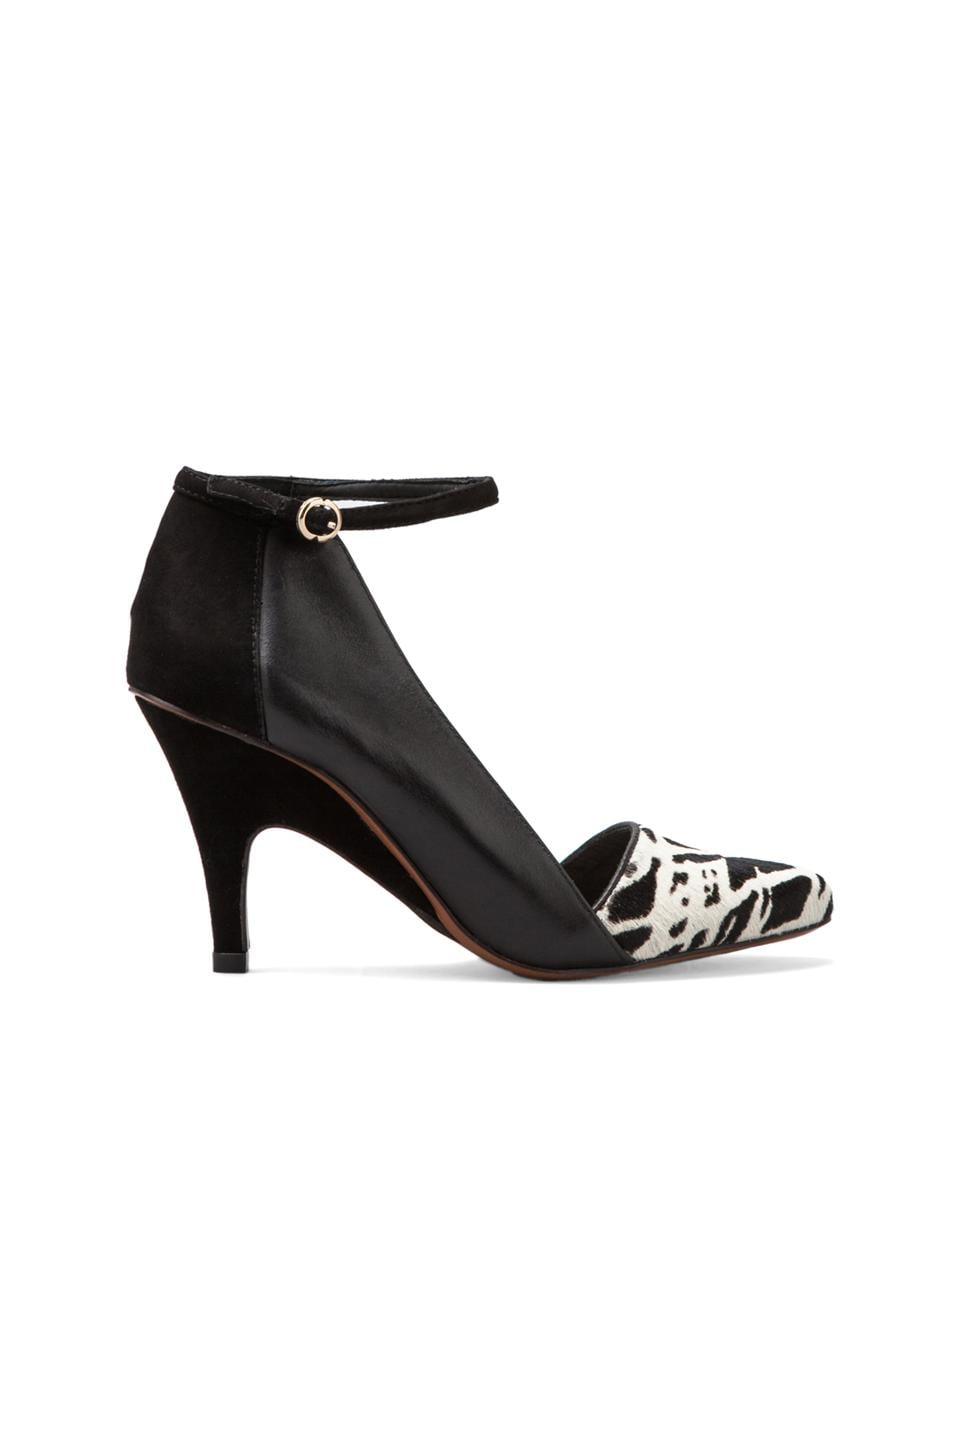 DEREK LAM 10 CROSBY Val Heel in Black/White